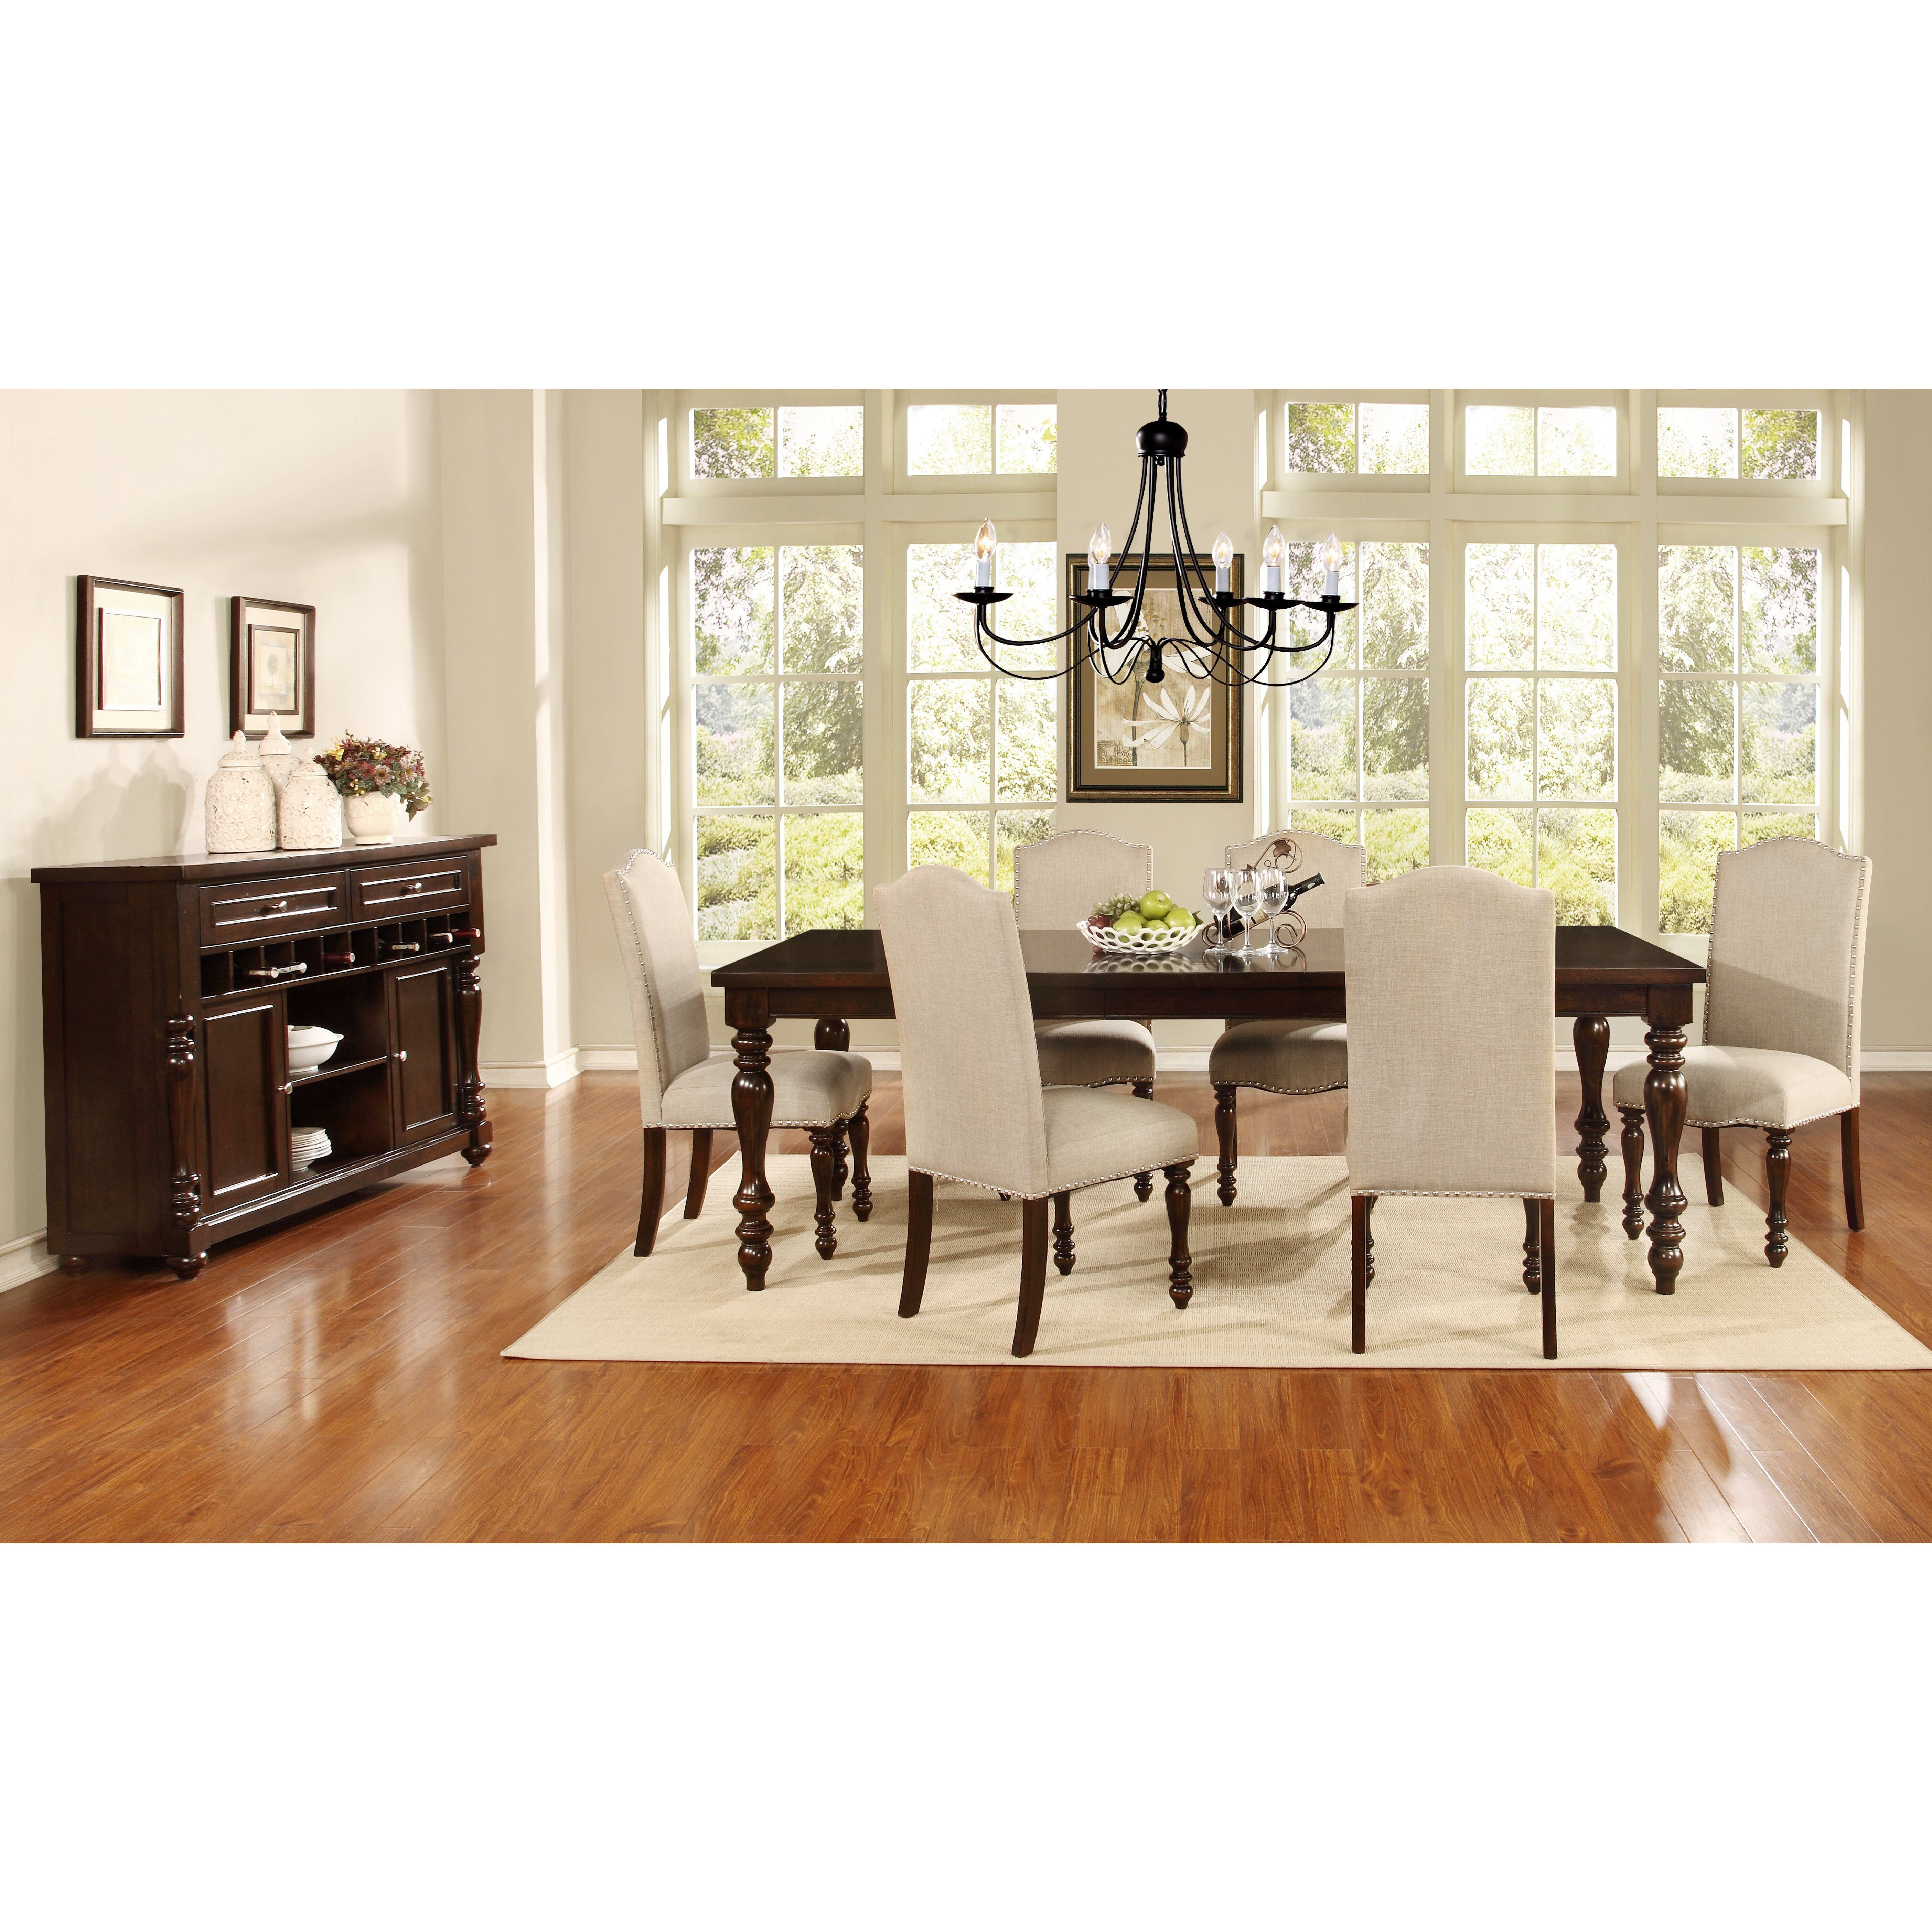 Tribecca home mackenzie 7 piece country white dining set - Quick View American Heritage 7 Piece Dining Set